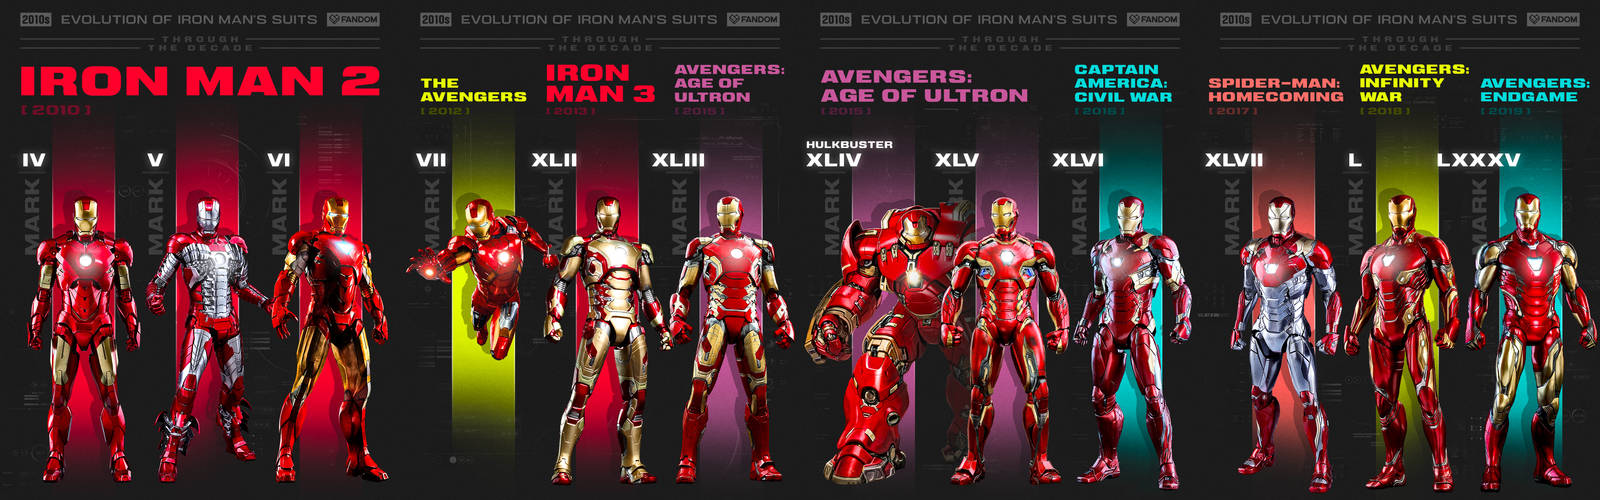 Iron Man Suits Through the Decade